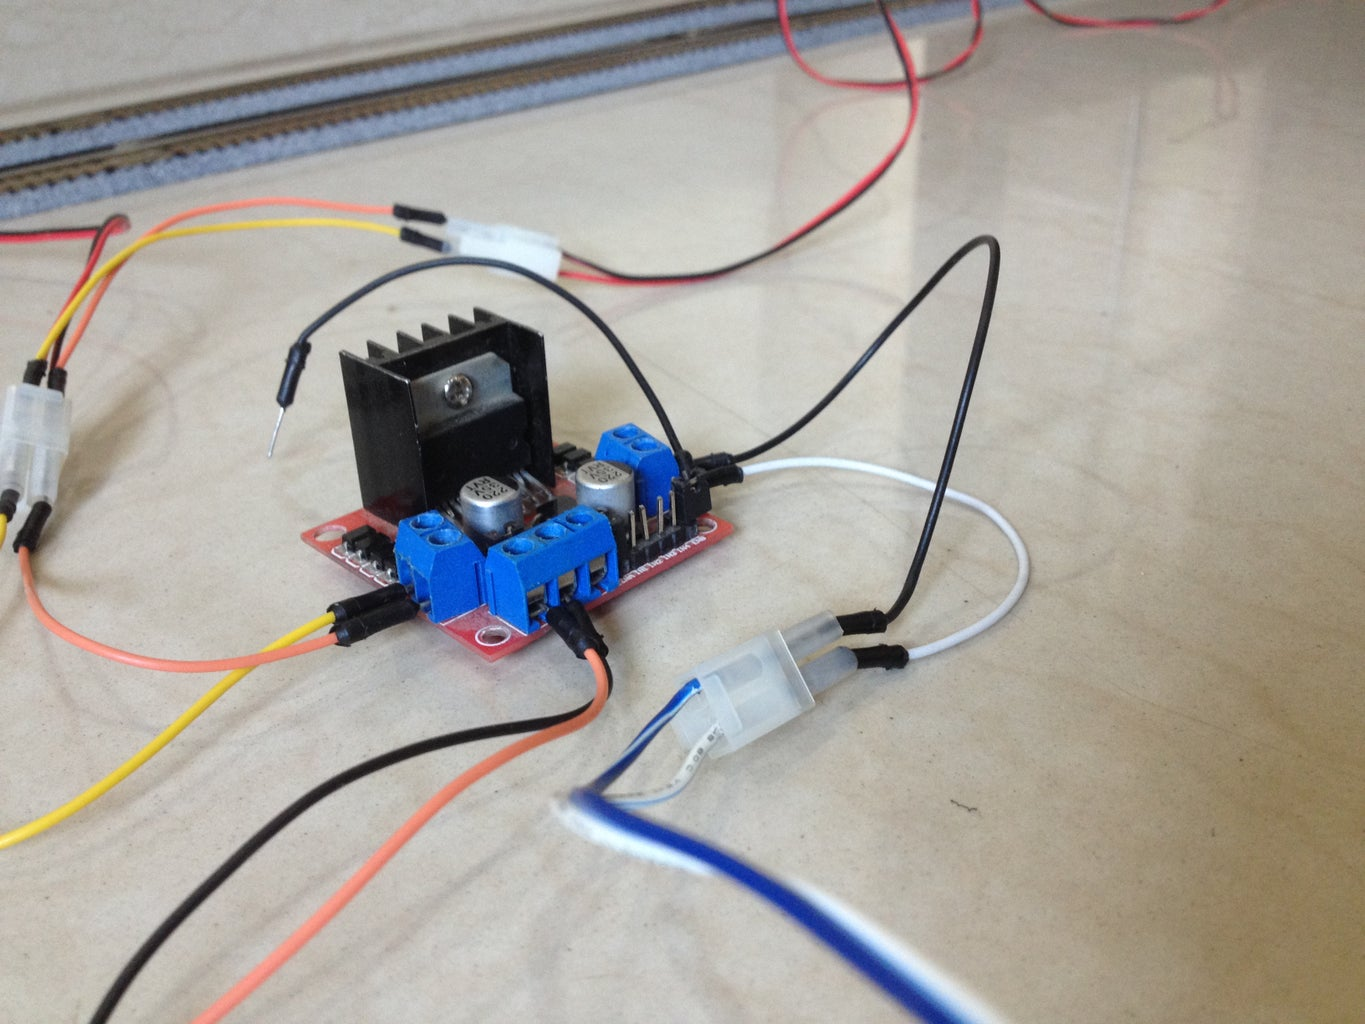 Connect the Motor Driver to the Track Power Feeder